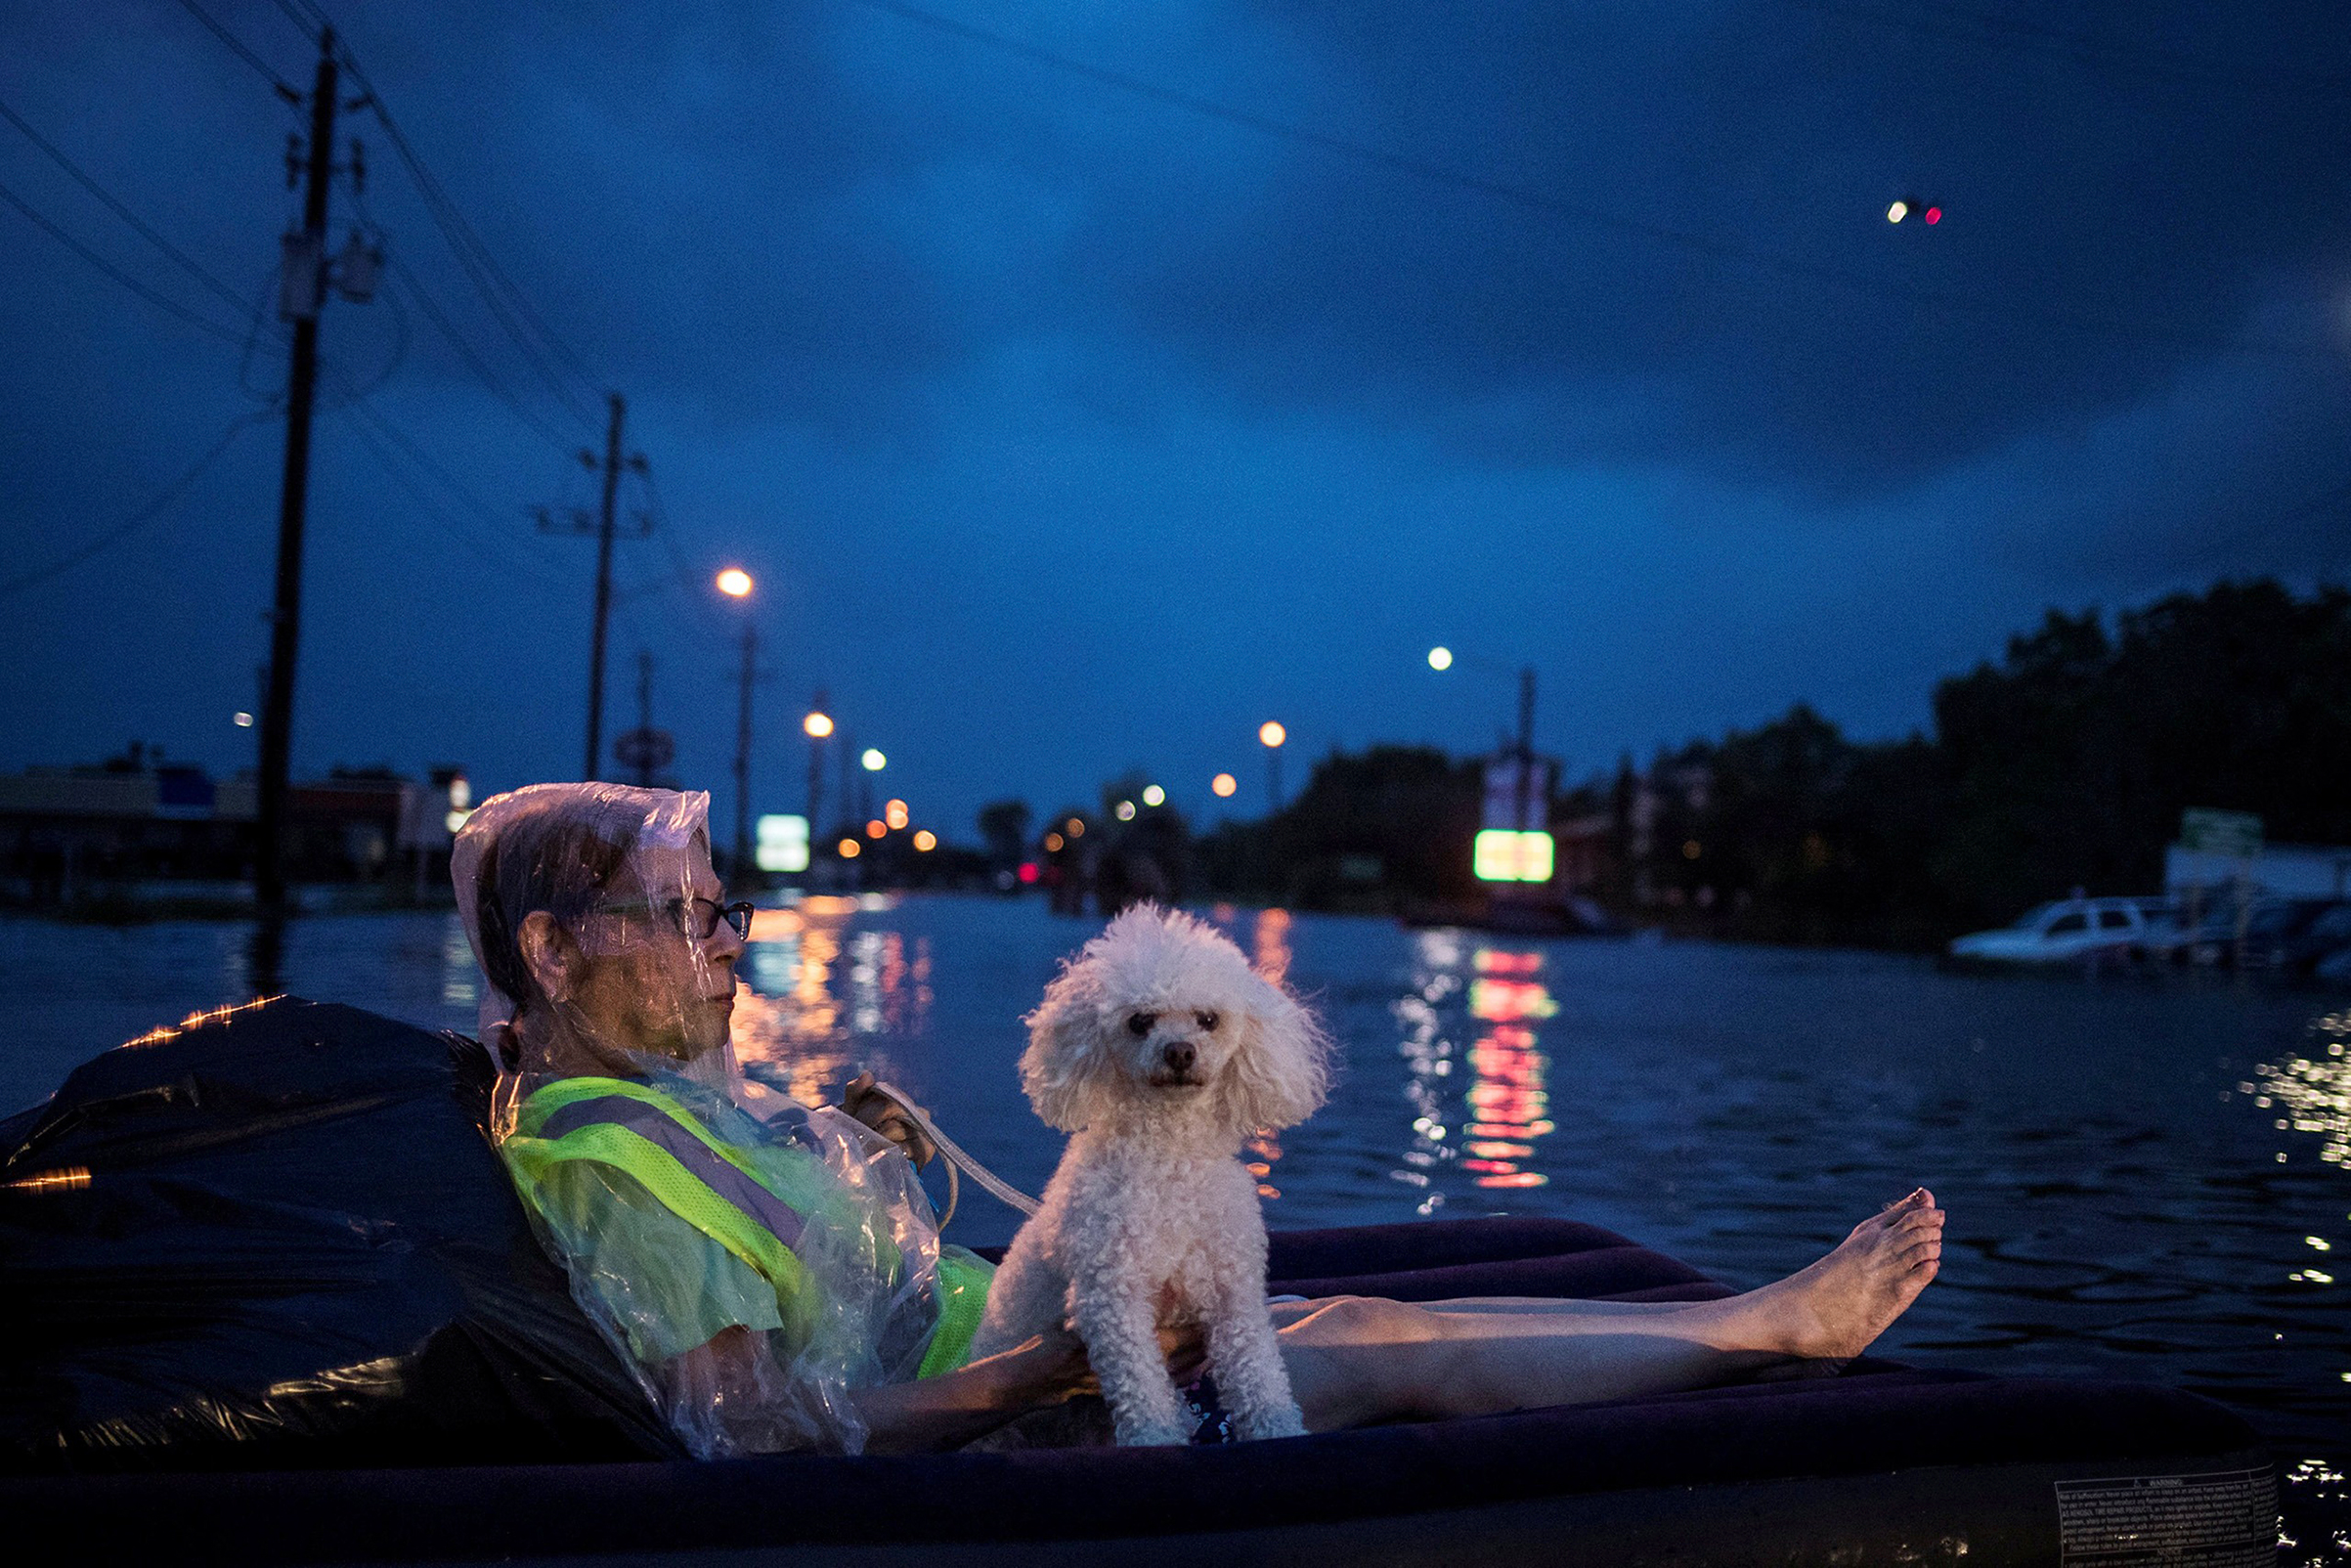 With an air mattress as a life raft, a survivor and her dog await recovery; a rescue helicopter hovered nearby